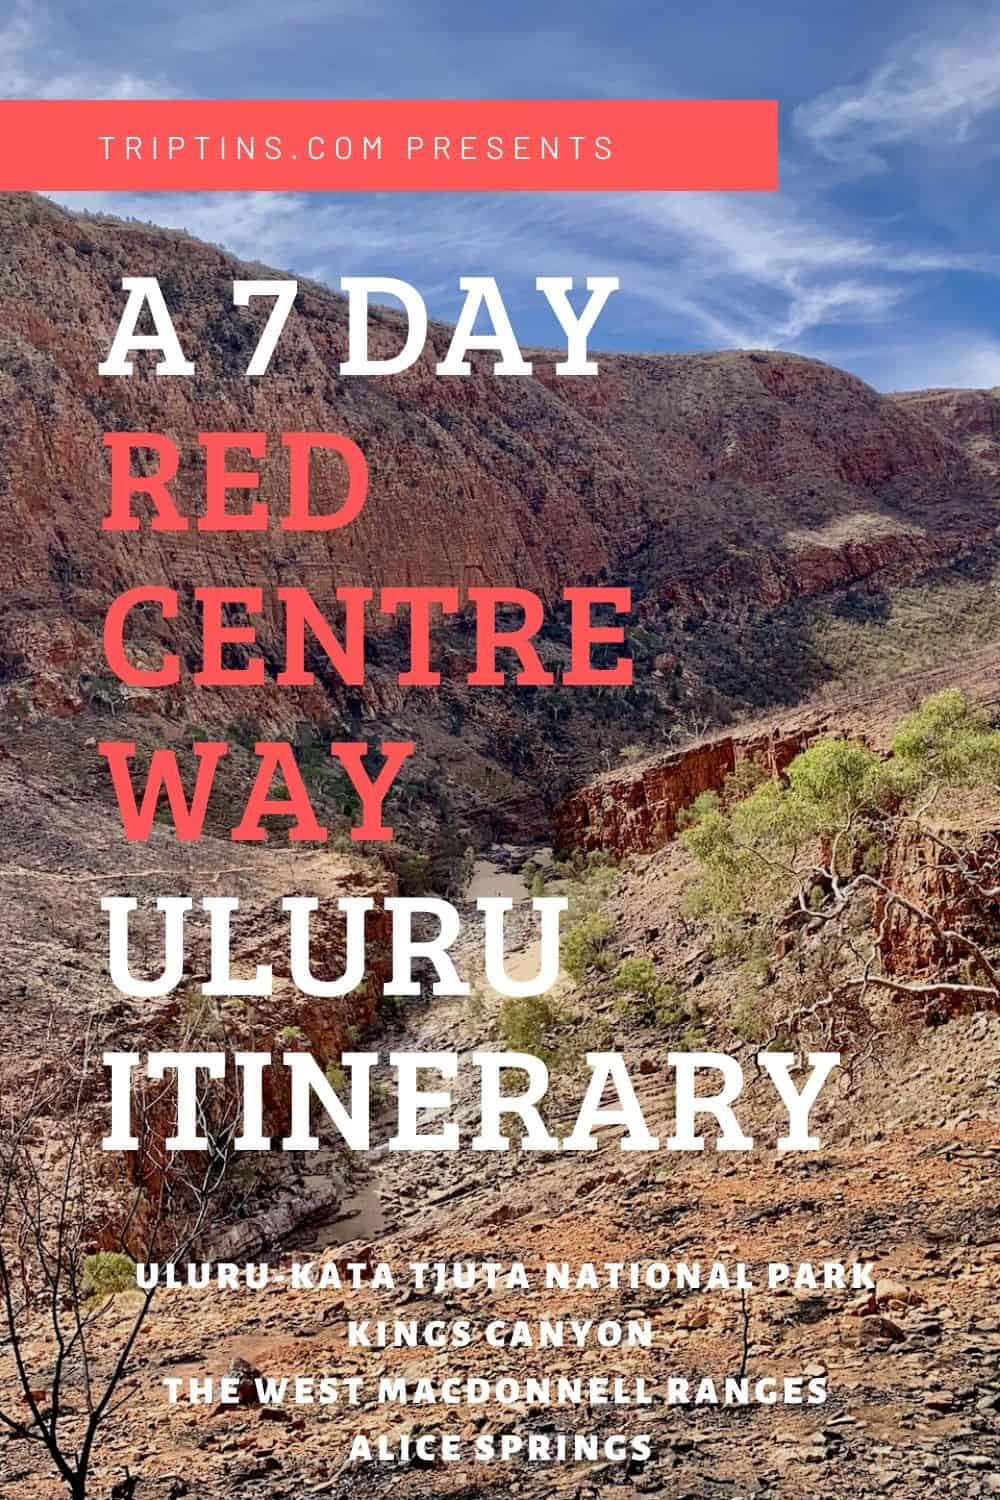 Red Centre Way Uluru Itinerary Guide